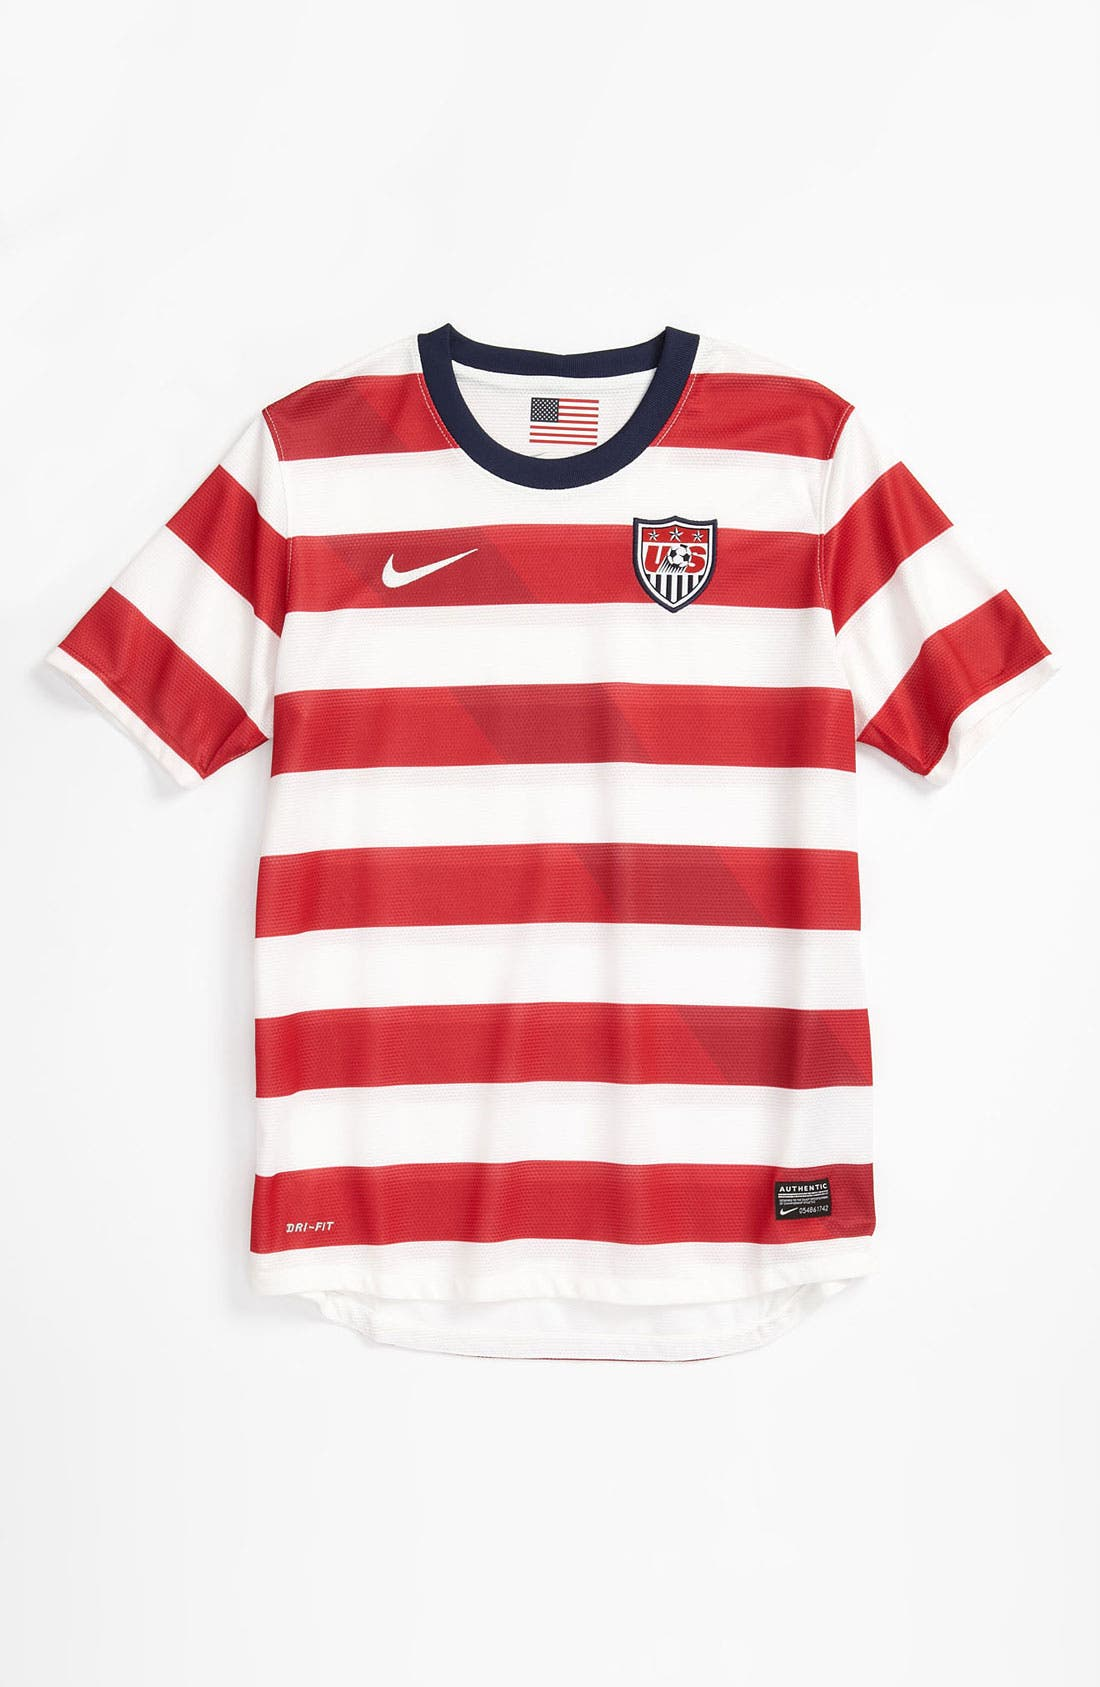 Main Image - Nike 'USA Home' Dri-FIT Jersey (Big Boys)